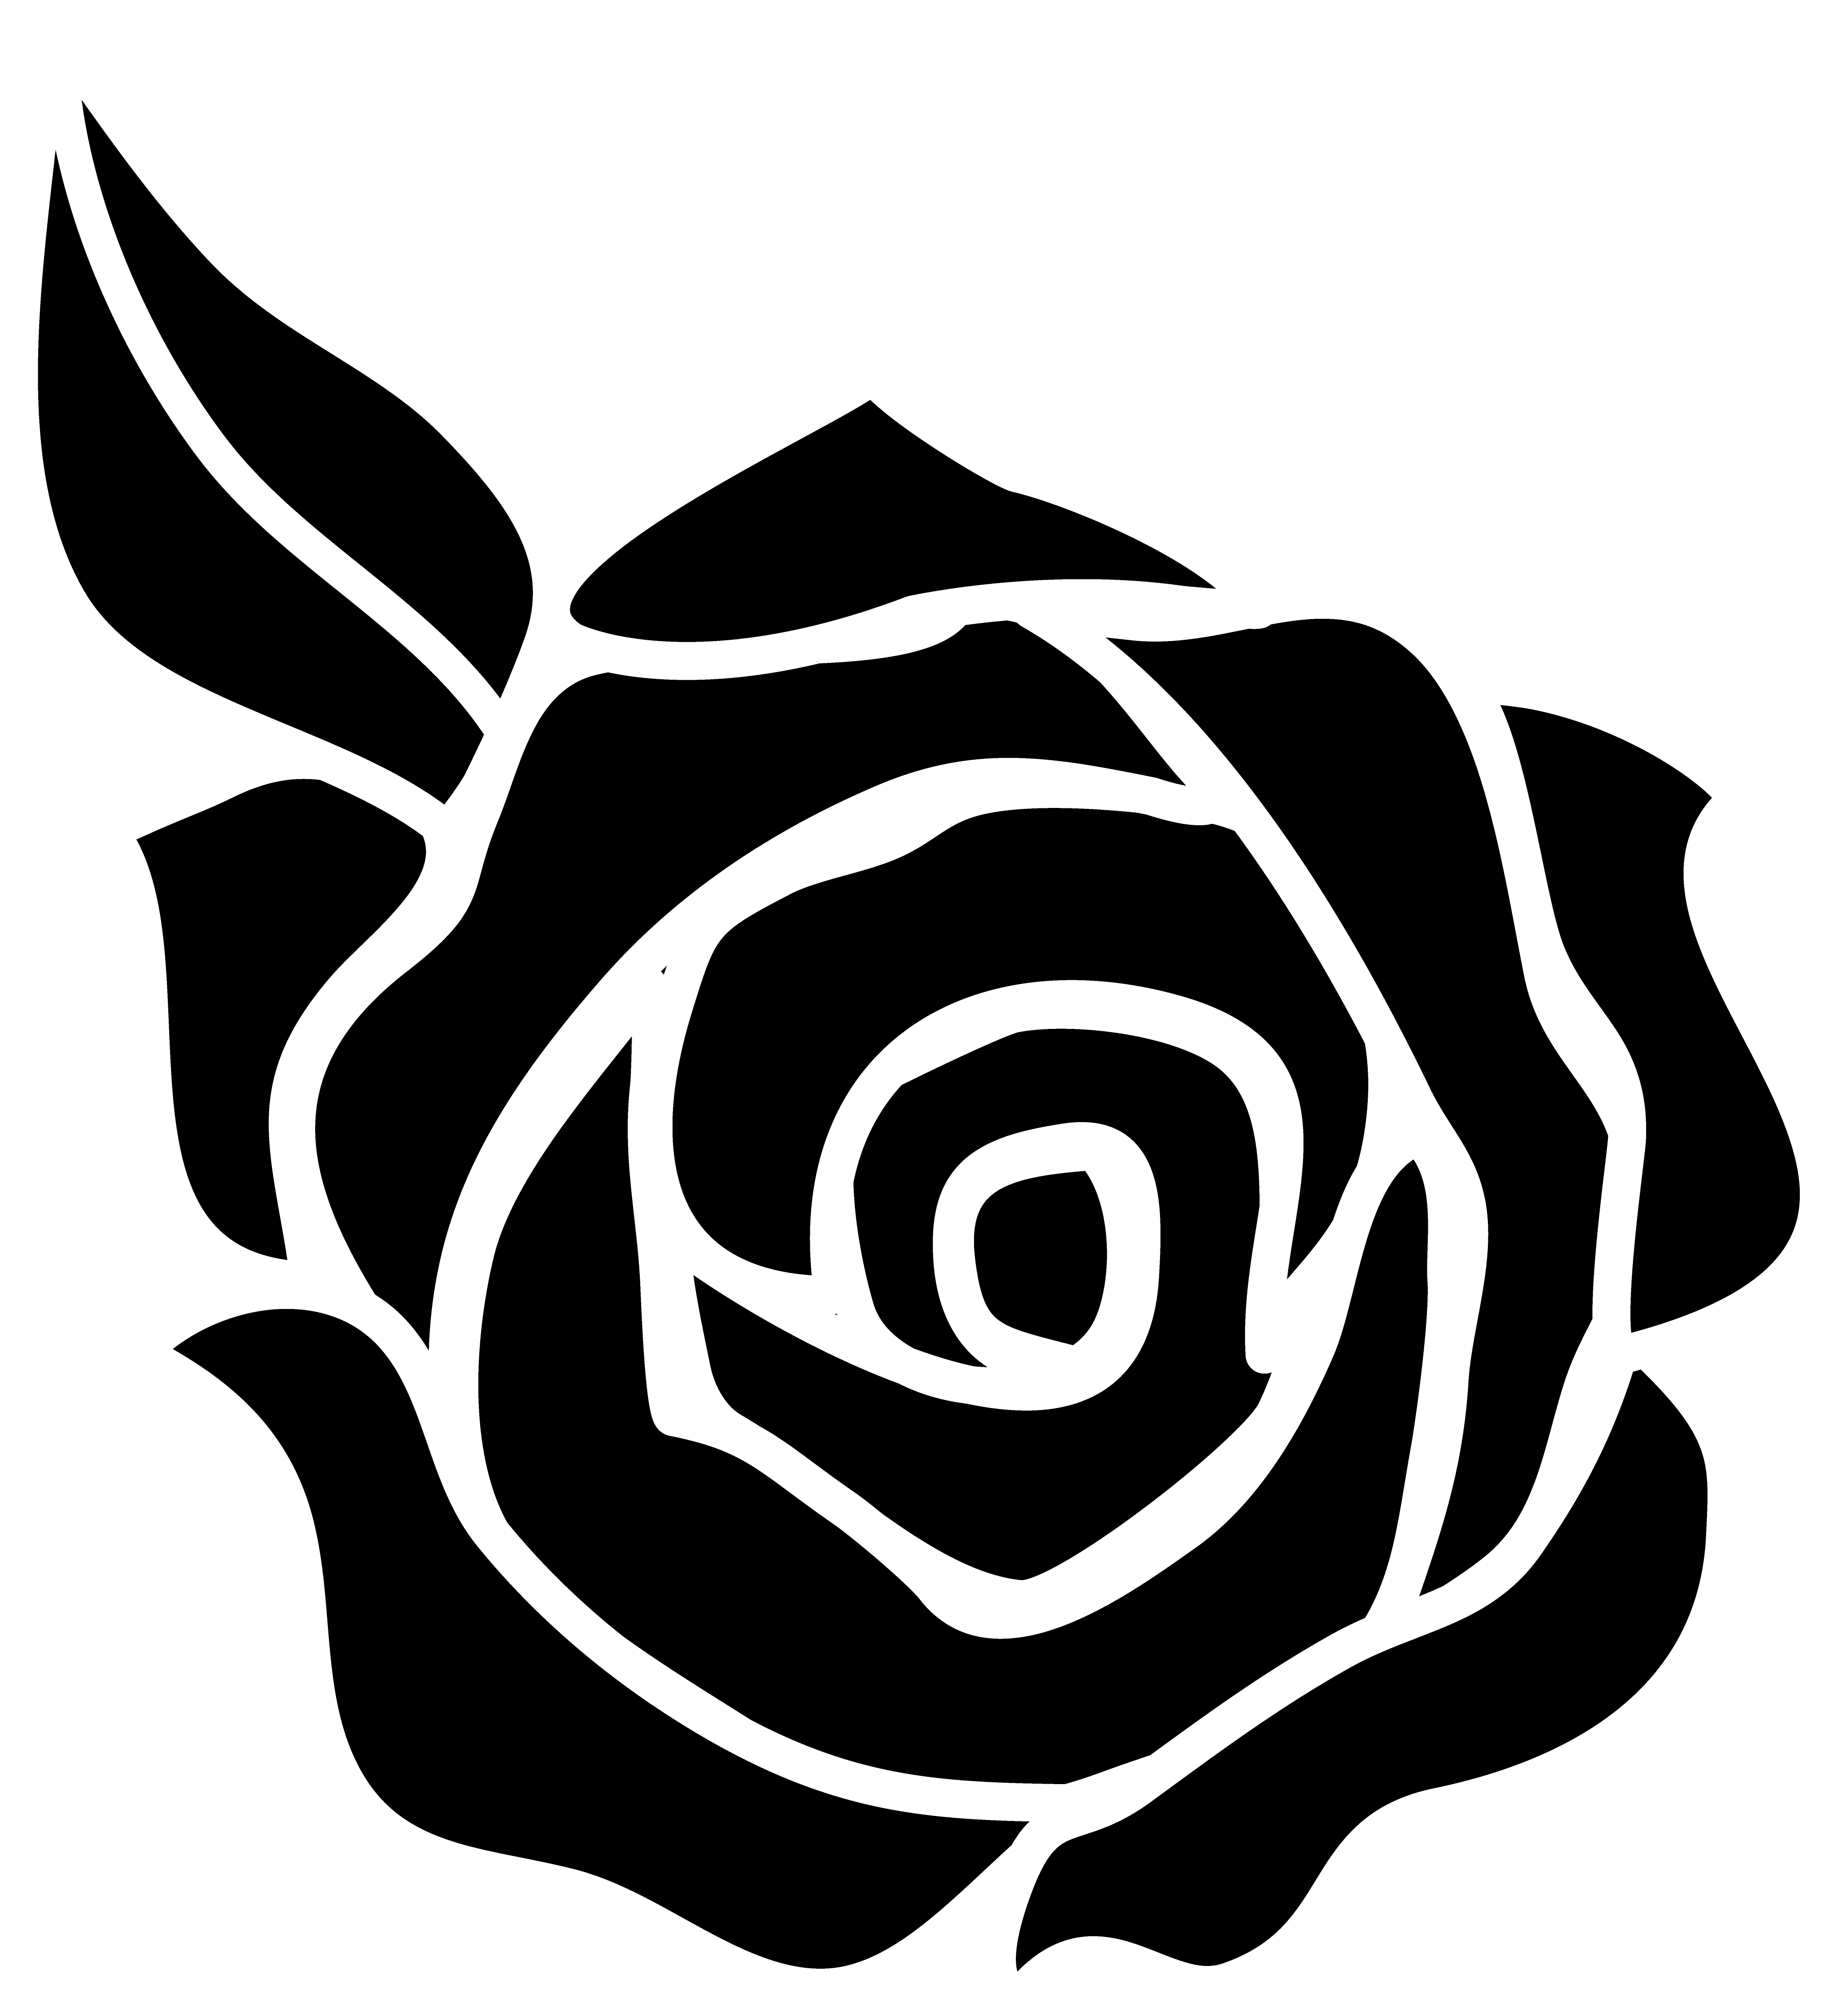 Clipart design rose. Horseshoe and vinyl decal